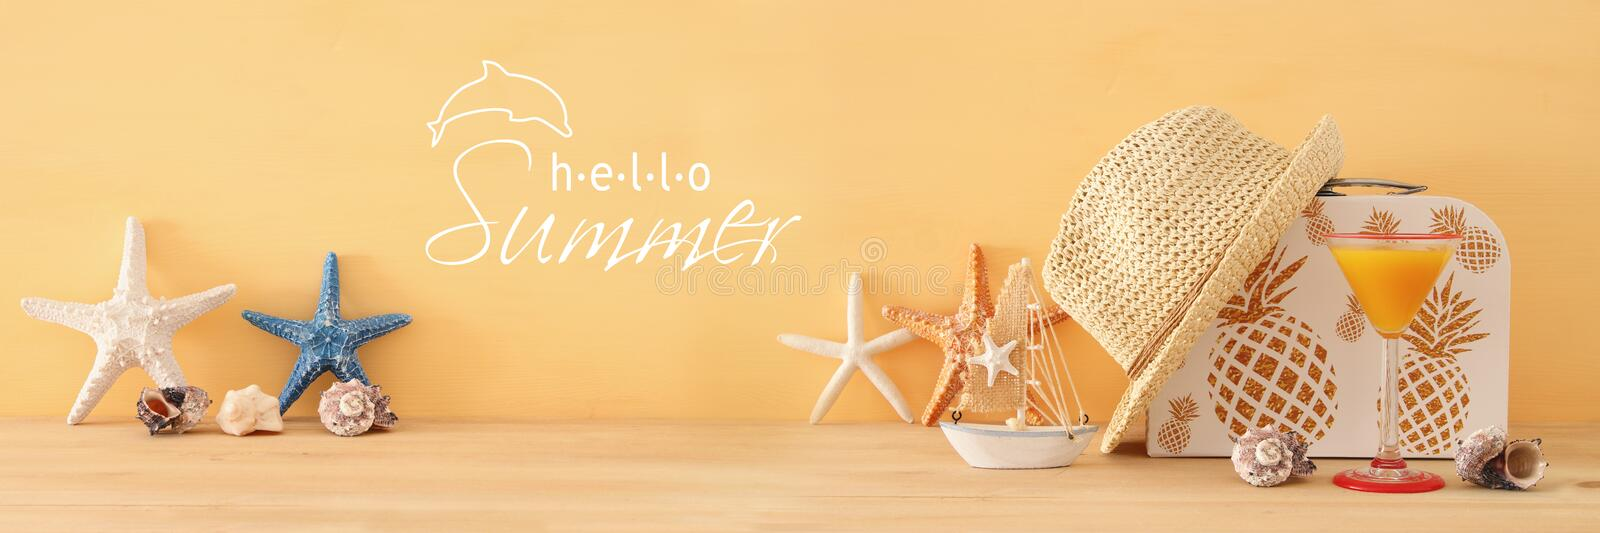 Nautical, vacation and travel banner with sea life style objects over wooden table. Nautical, vacation and travel banner with sea life style objects over wooden royalty free stock image